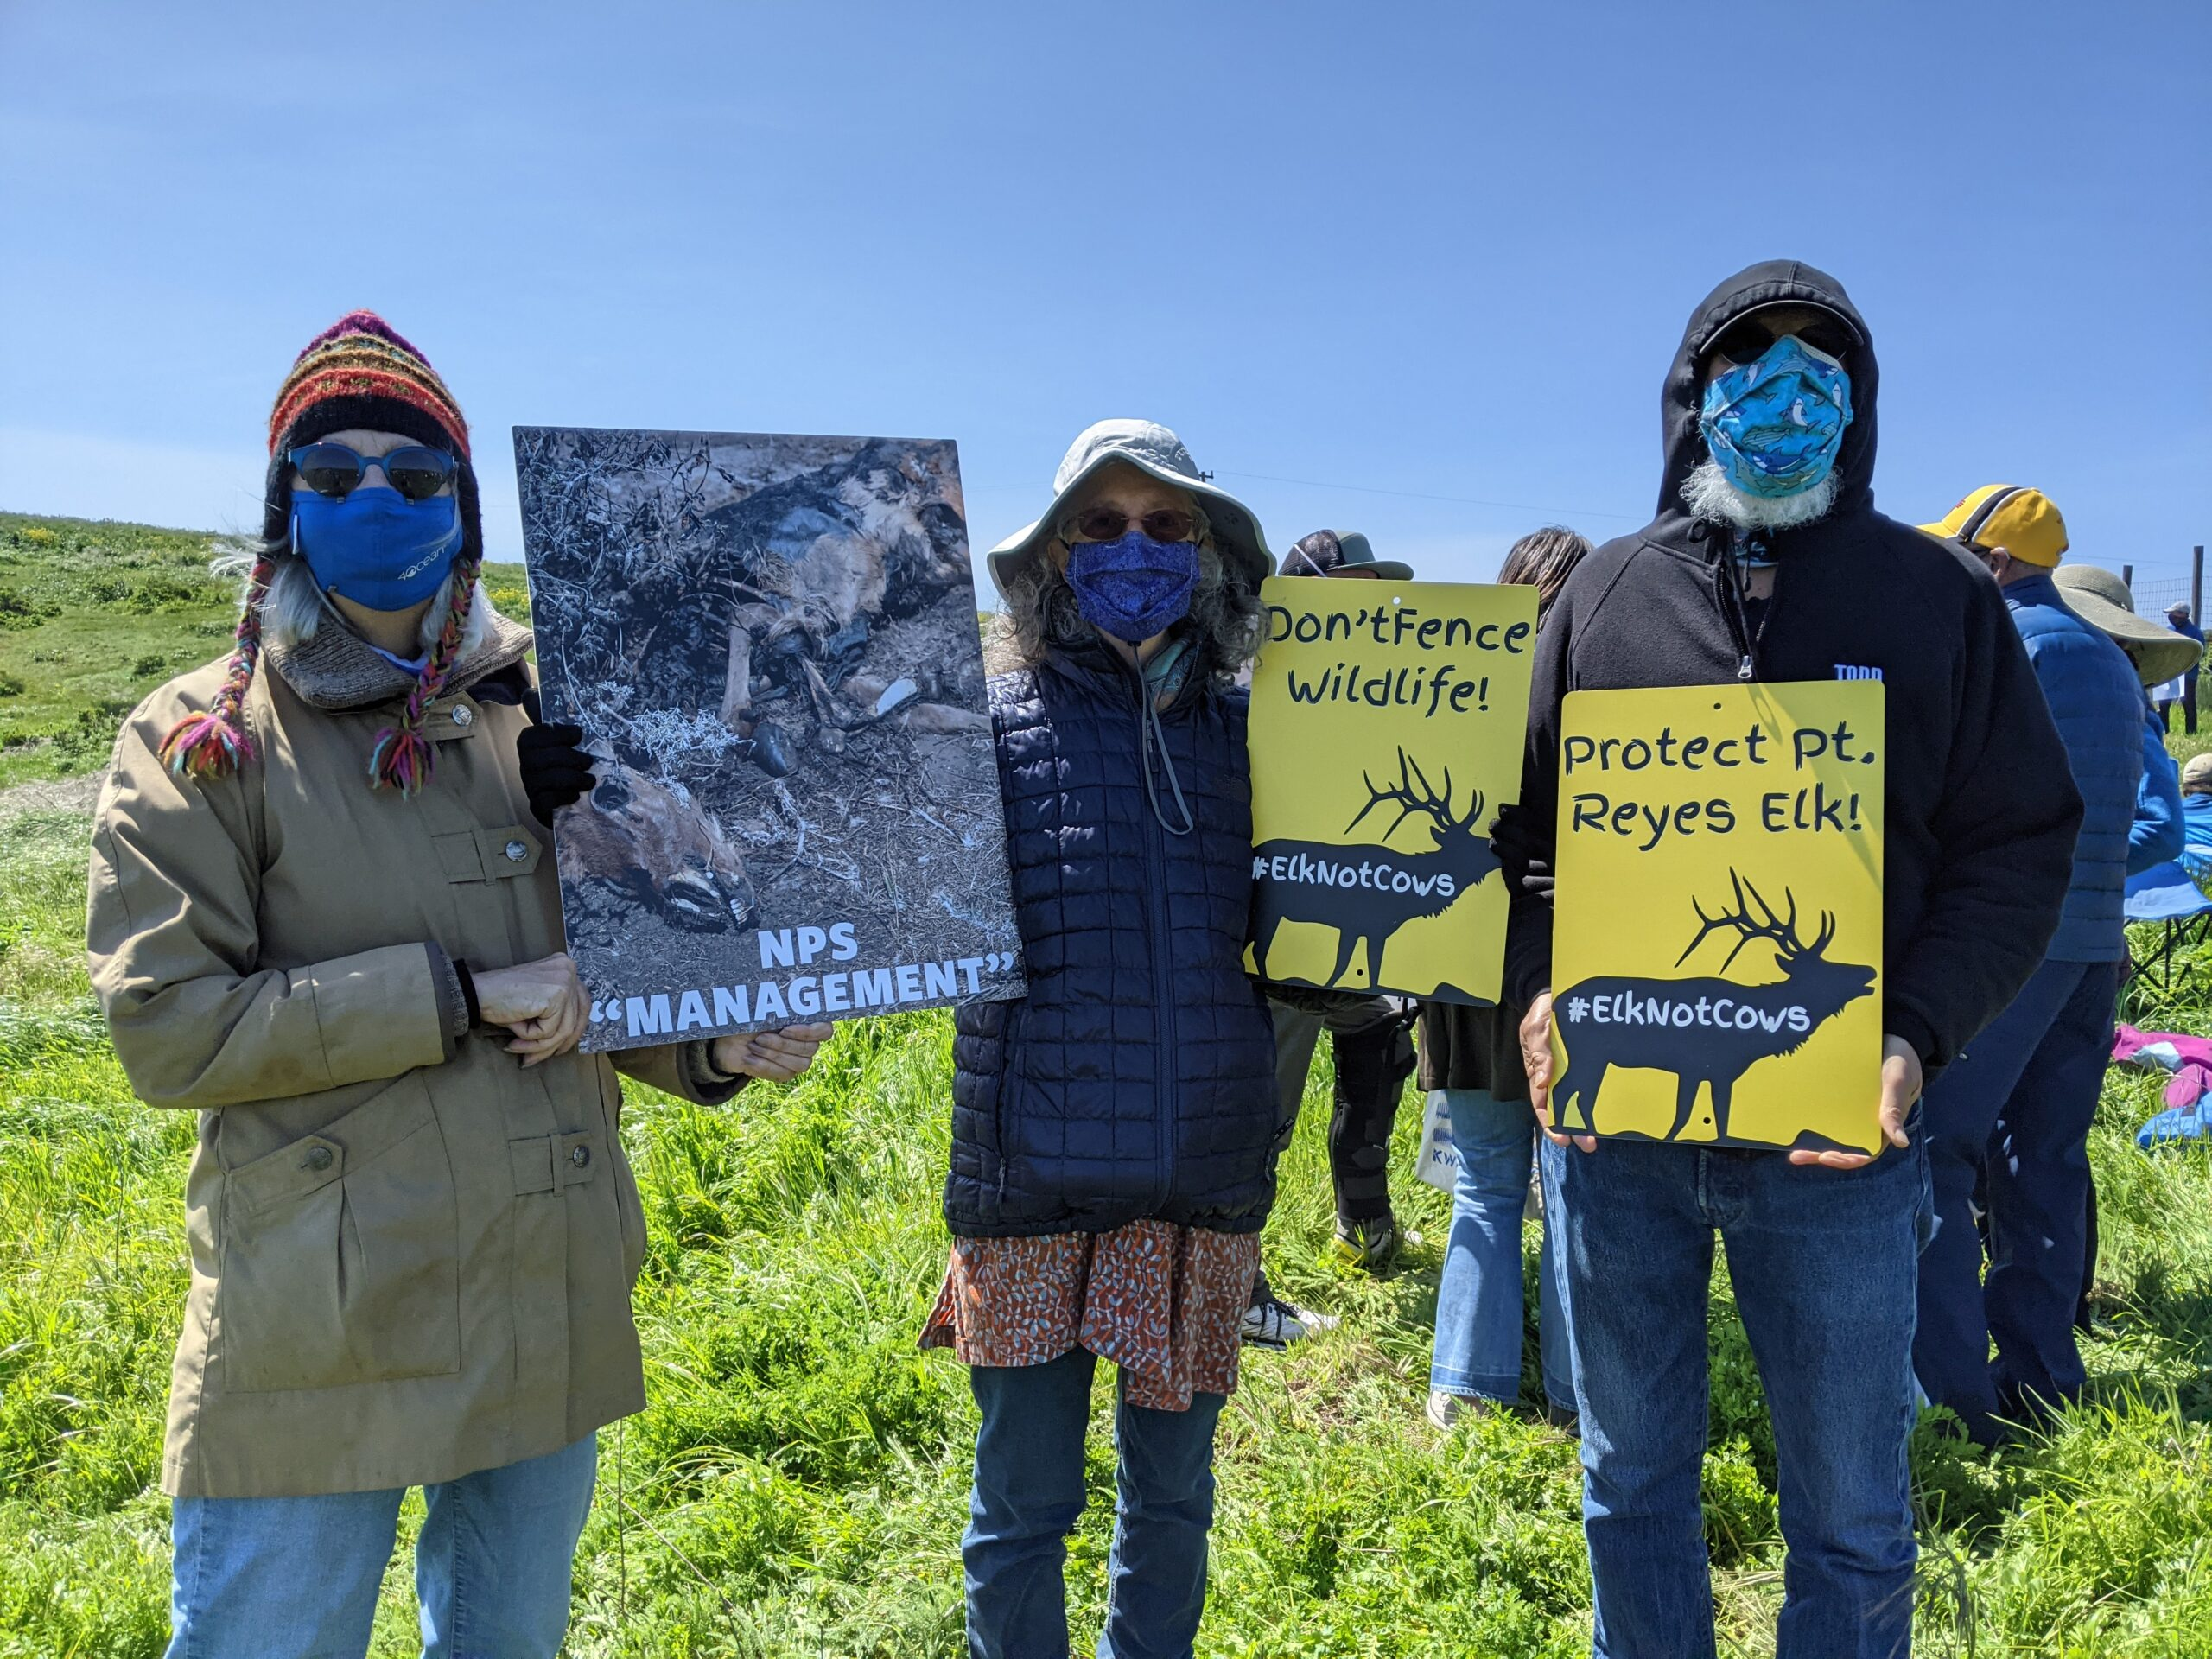 Print Your Own Protest Signs to Save California's Tule Elk!